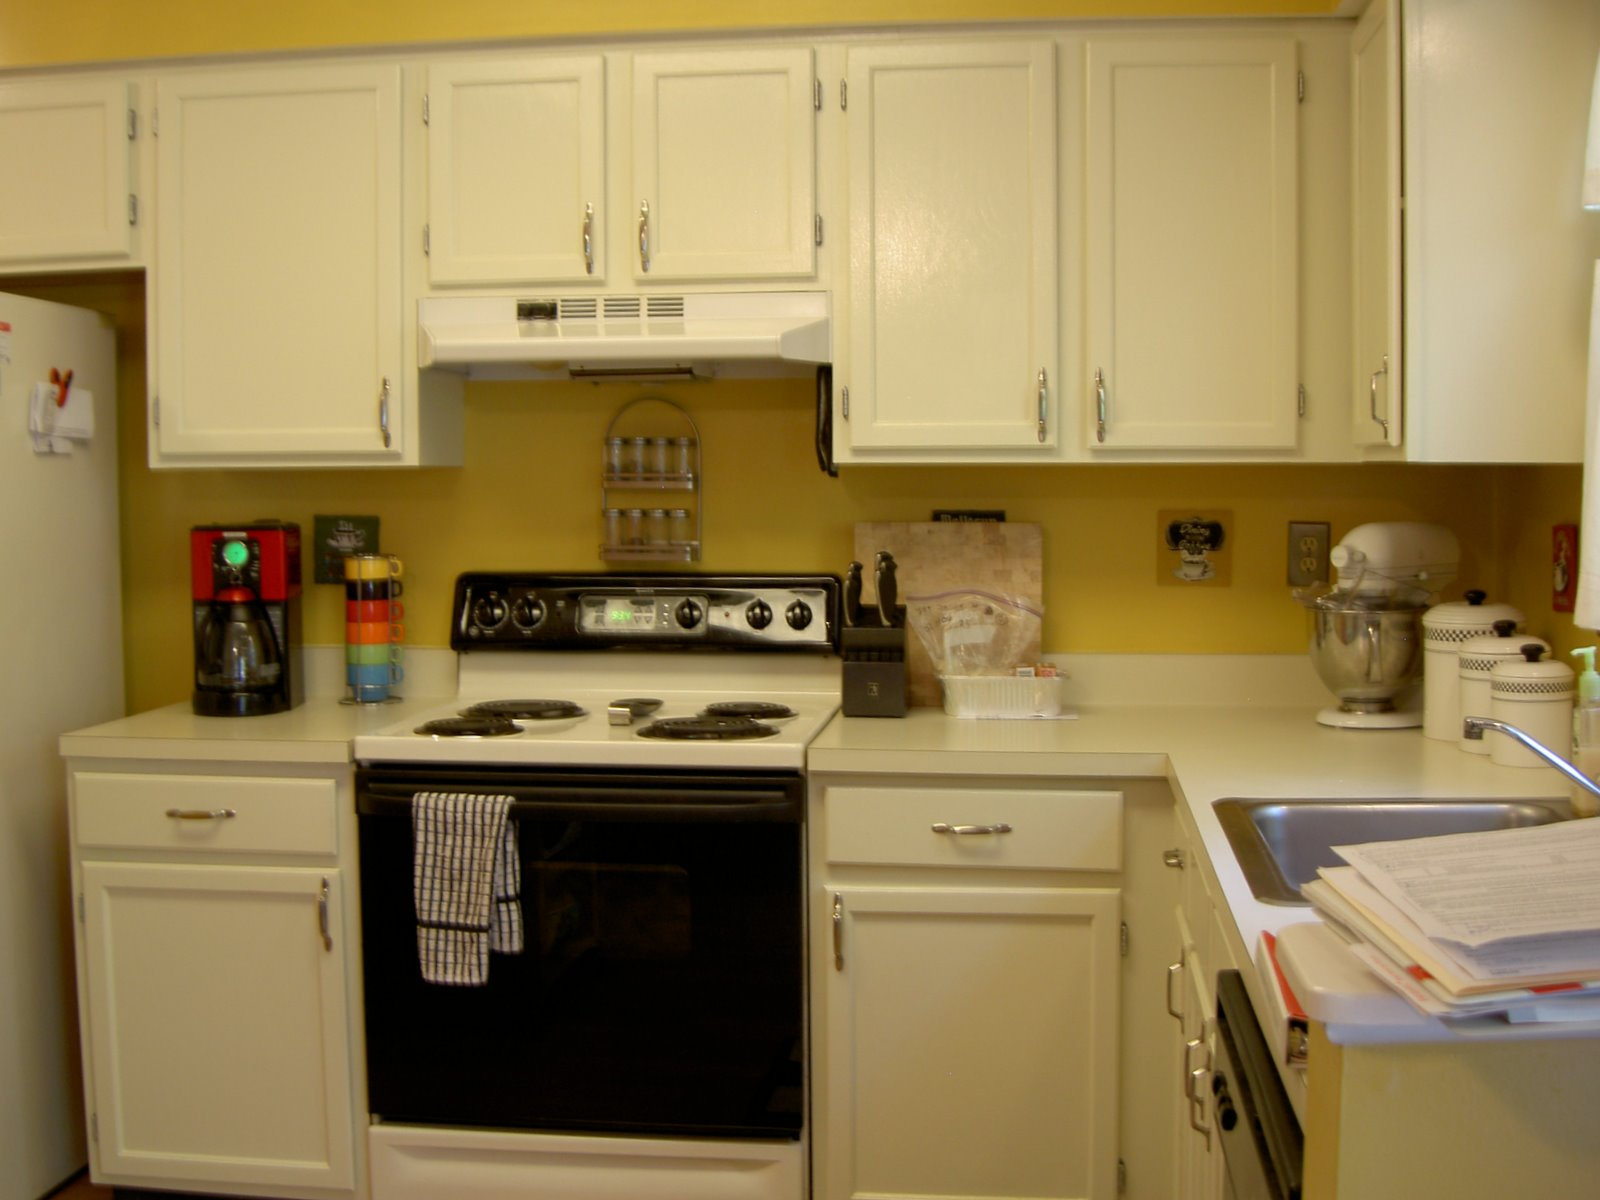 off white kitchen cabinets with black appliances off white kitchen cabinets Off White Cabinets Silver Handles Visible Hinges And Black Appliances